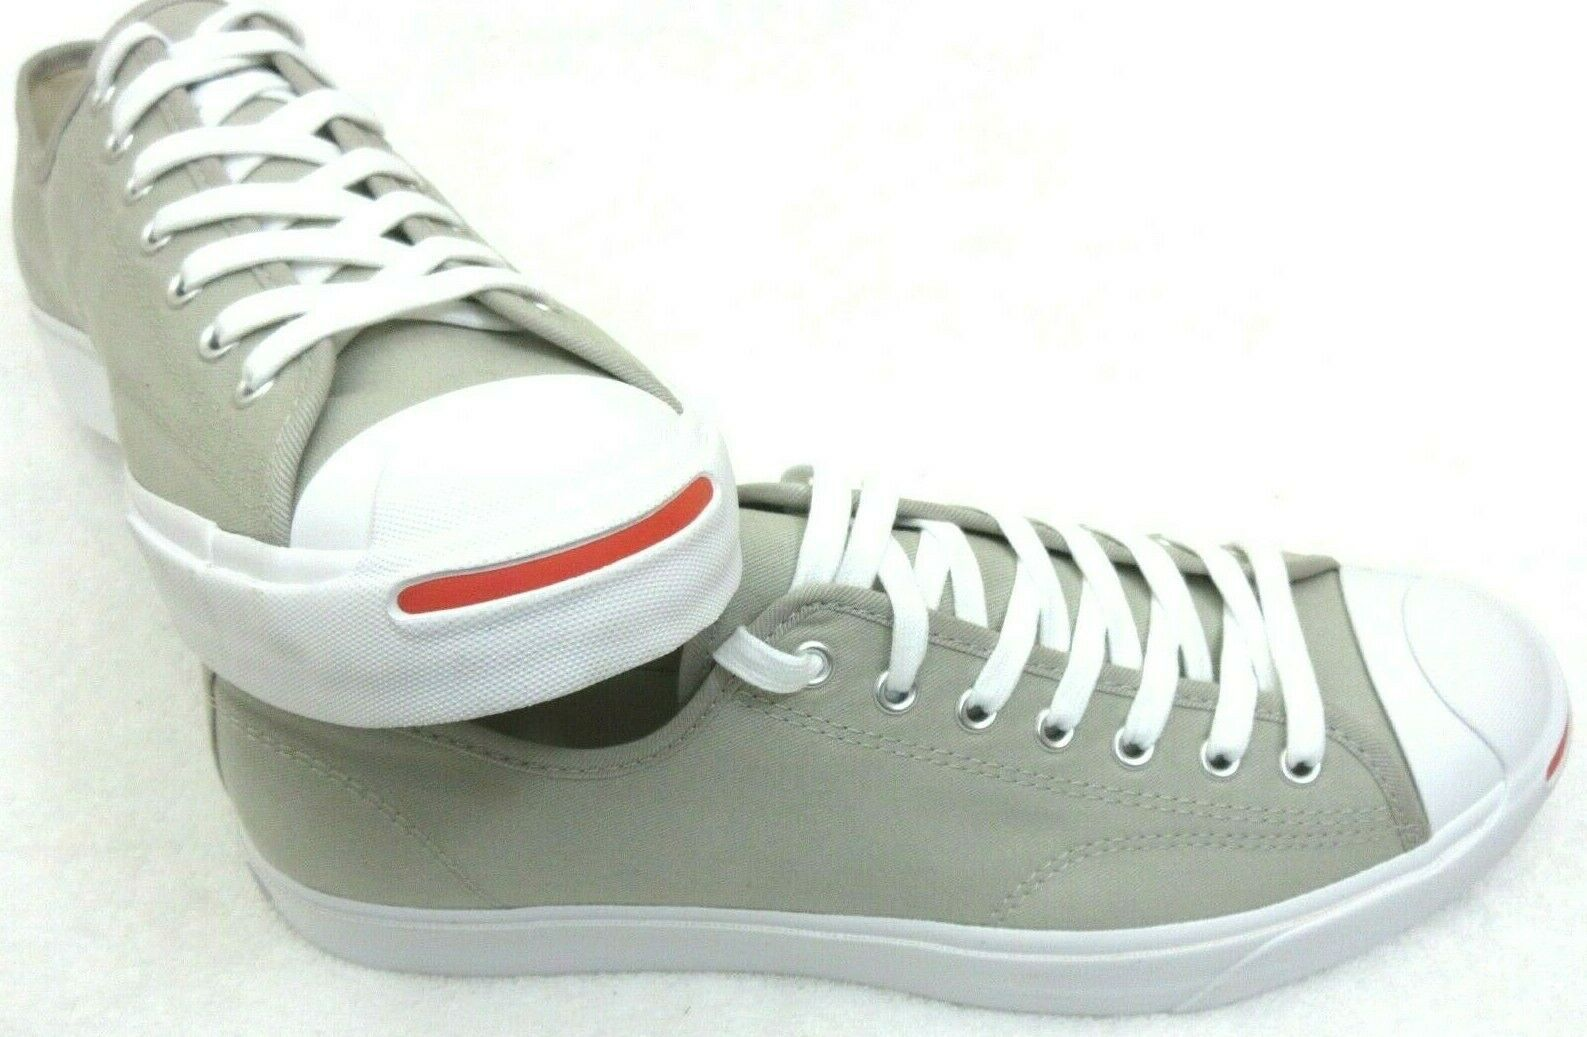 Converse Mens Jack Purcell OX Canvas Birch Bark White Habanero Red Shoes 10.5 image 3